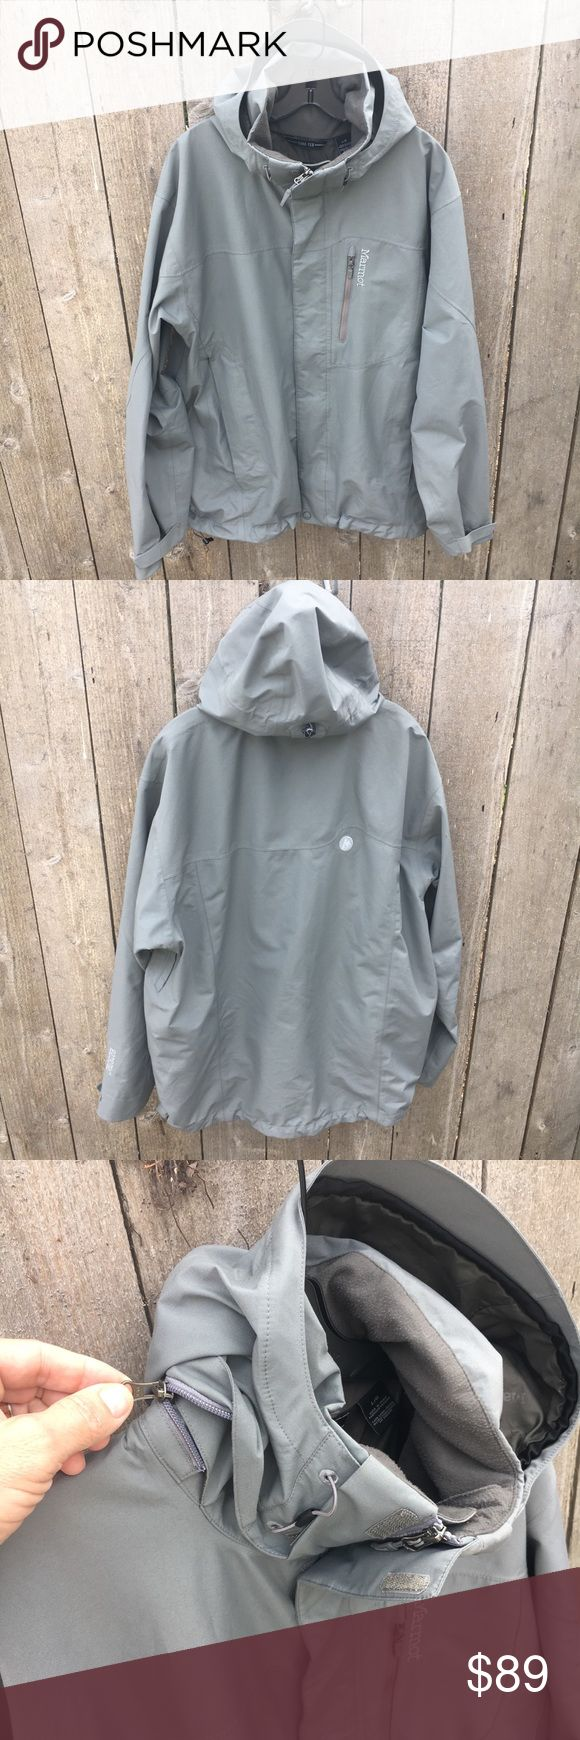 Flash Sale 🔥 Marmot Goretex Performance Shell Great ski or snowboard jacket with Gore-Tex fabric for top of the line waterproofing.  - Removable hood - armpit vents - powder skirt  Perfect condition.  All offers considered! Marmot Jackets & Coats Ski & Snowboard